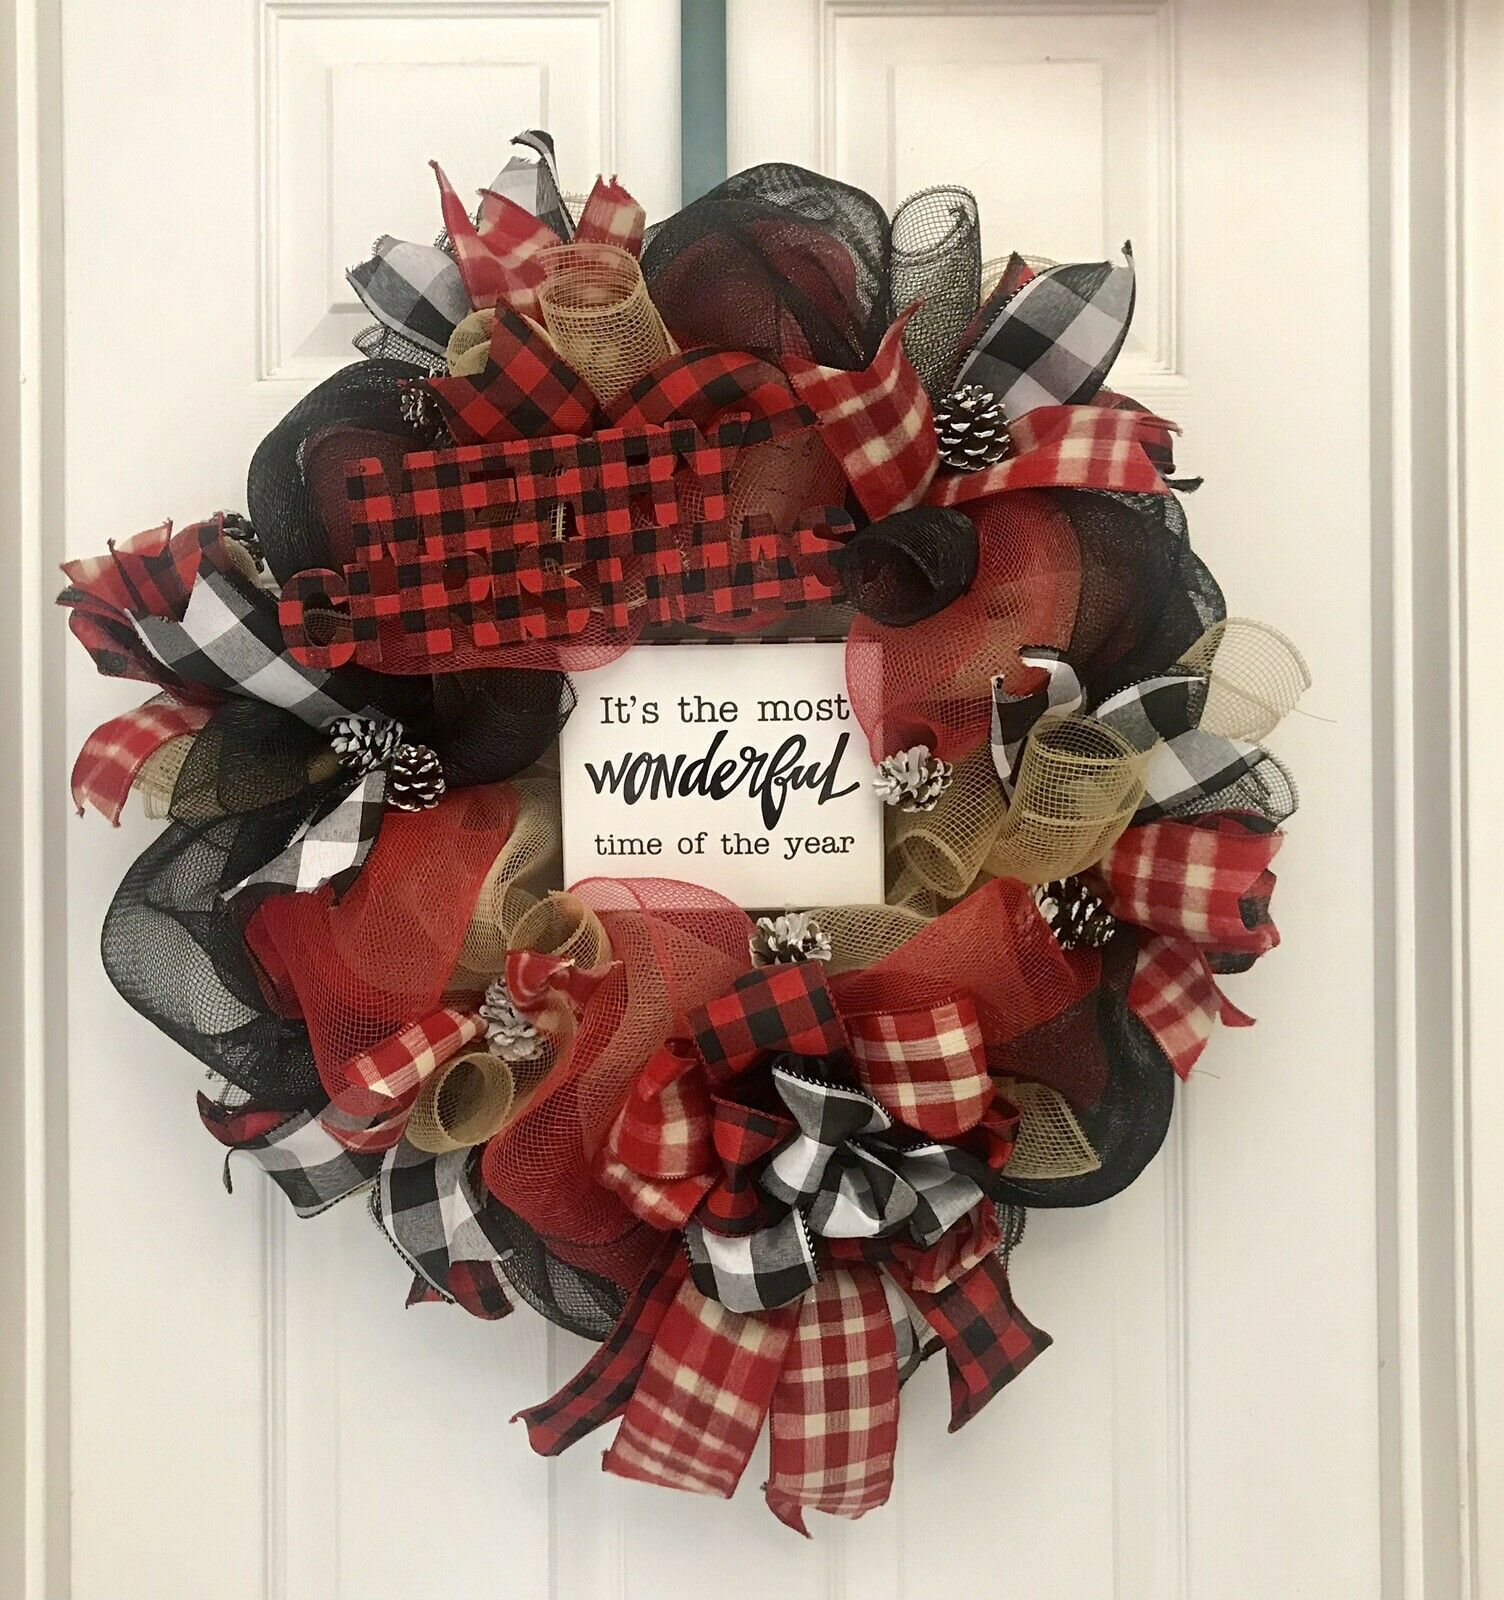 Wreaths 25 Christmas Buffalo Plaid Wreaths For Front Door Thanksgiving Holiday Wreath With Gingham Bow Autumn Welcome Wreath Door Hanger Garland Home Outdoor Christmas Decoration Ornament Home Kitchen Startsolar Com Au